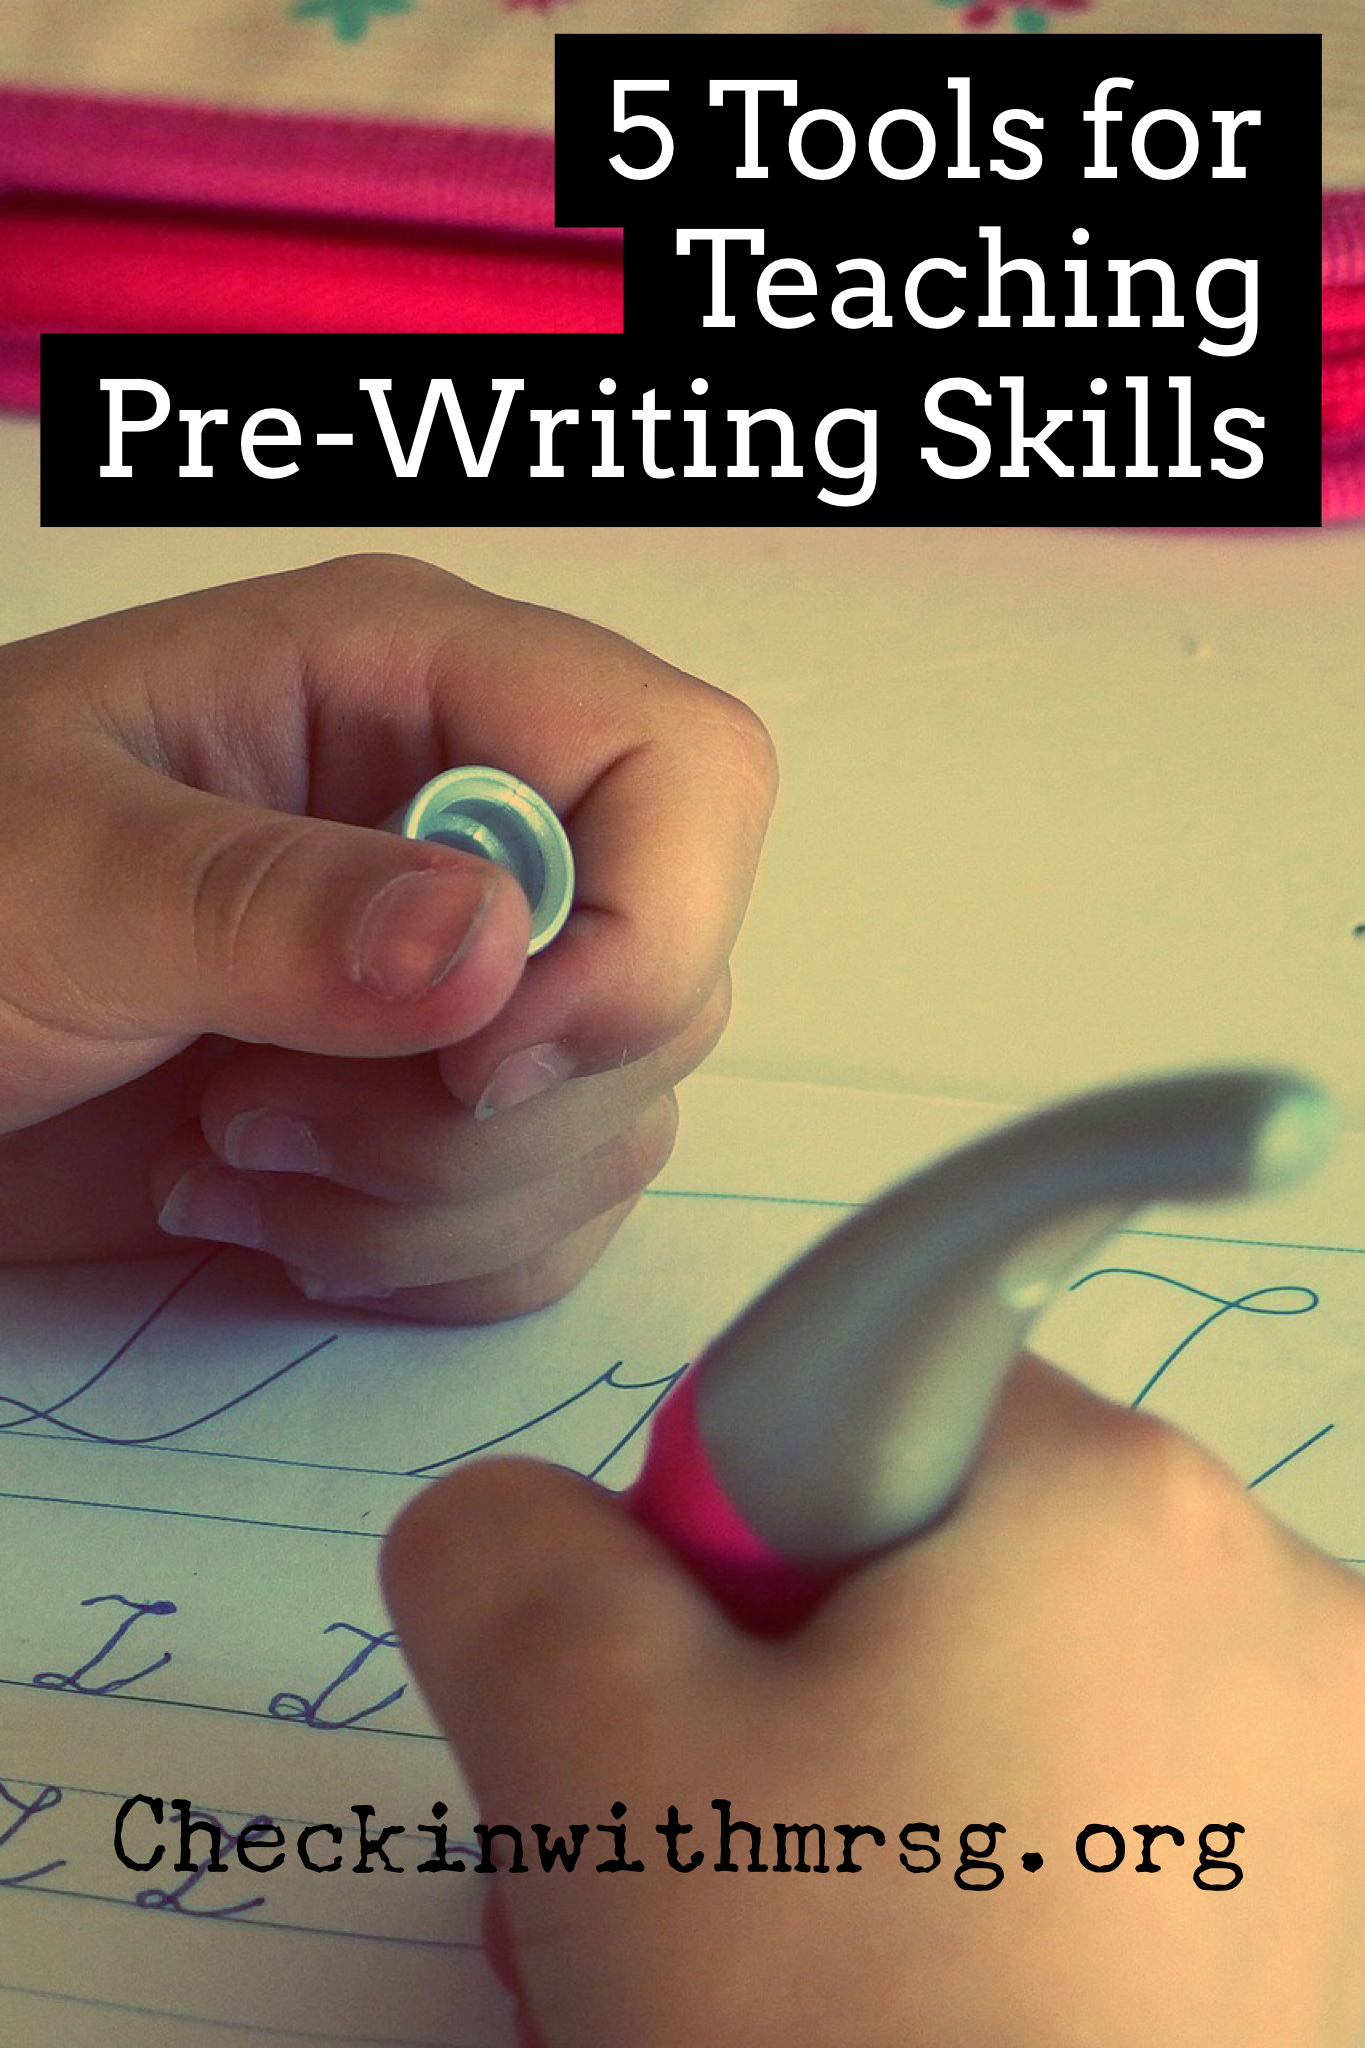 Tools and strategies for teaching pre-writing skills in